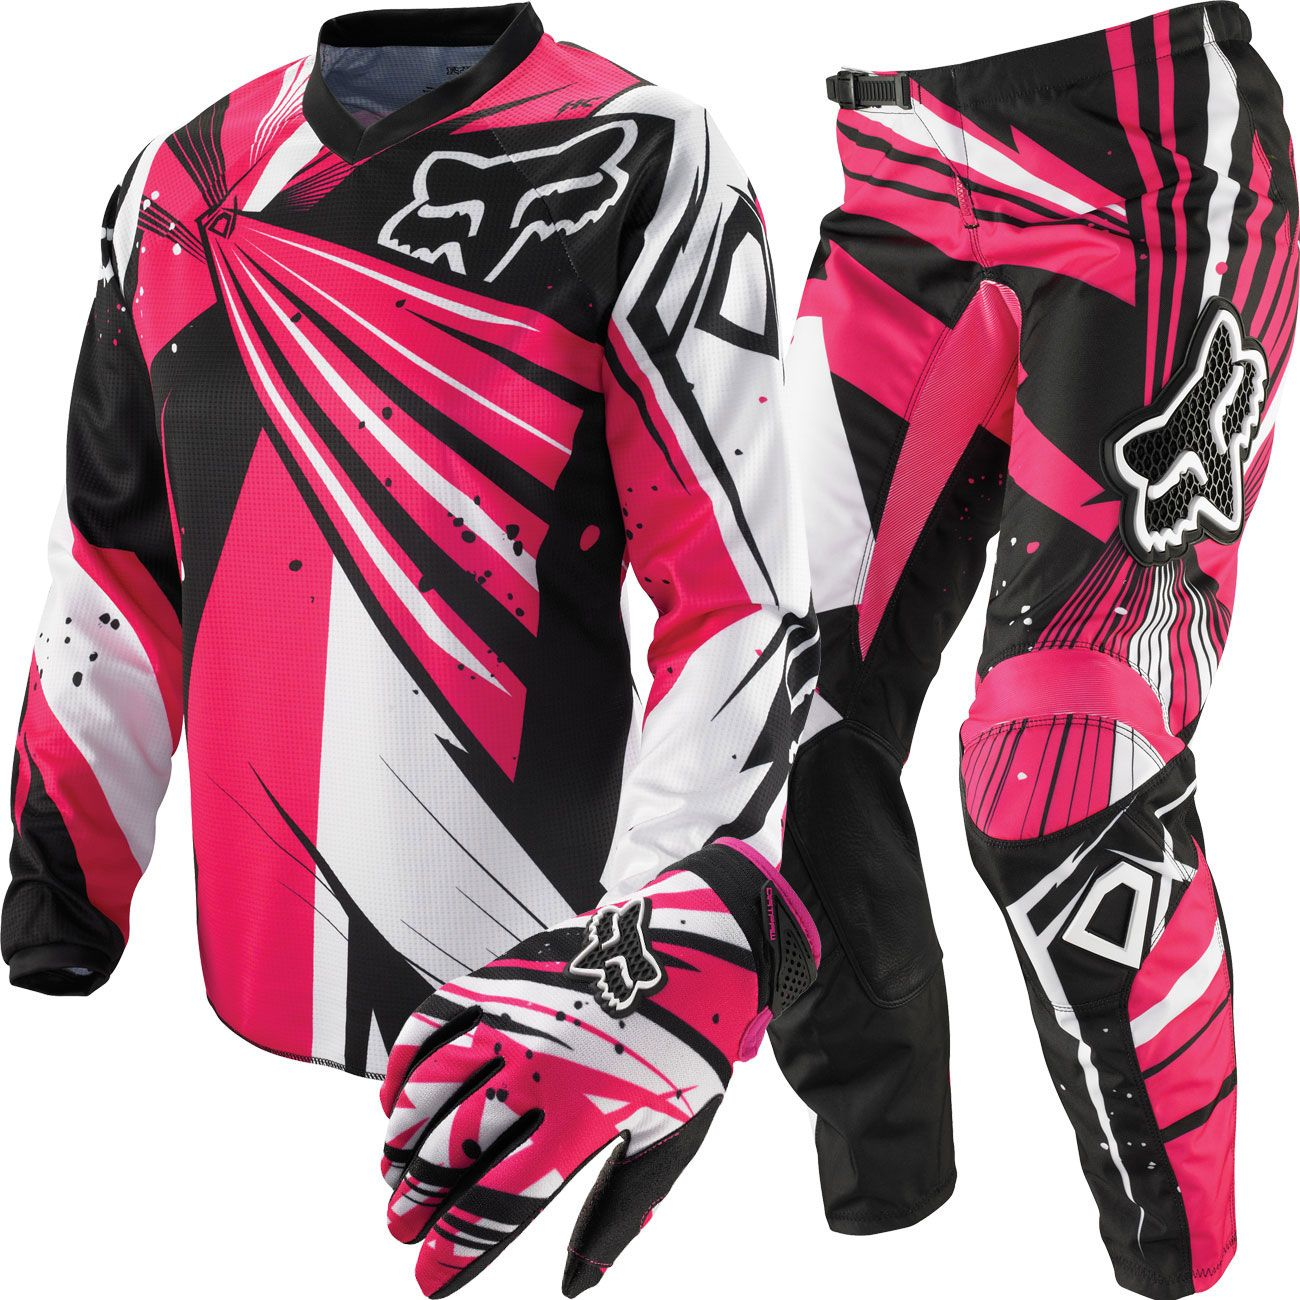 Pink Fox Riding Gear This Is A Must Have For That Pink Rzr Dirt Bike Gear Pink Dirt Bike Bike Gear